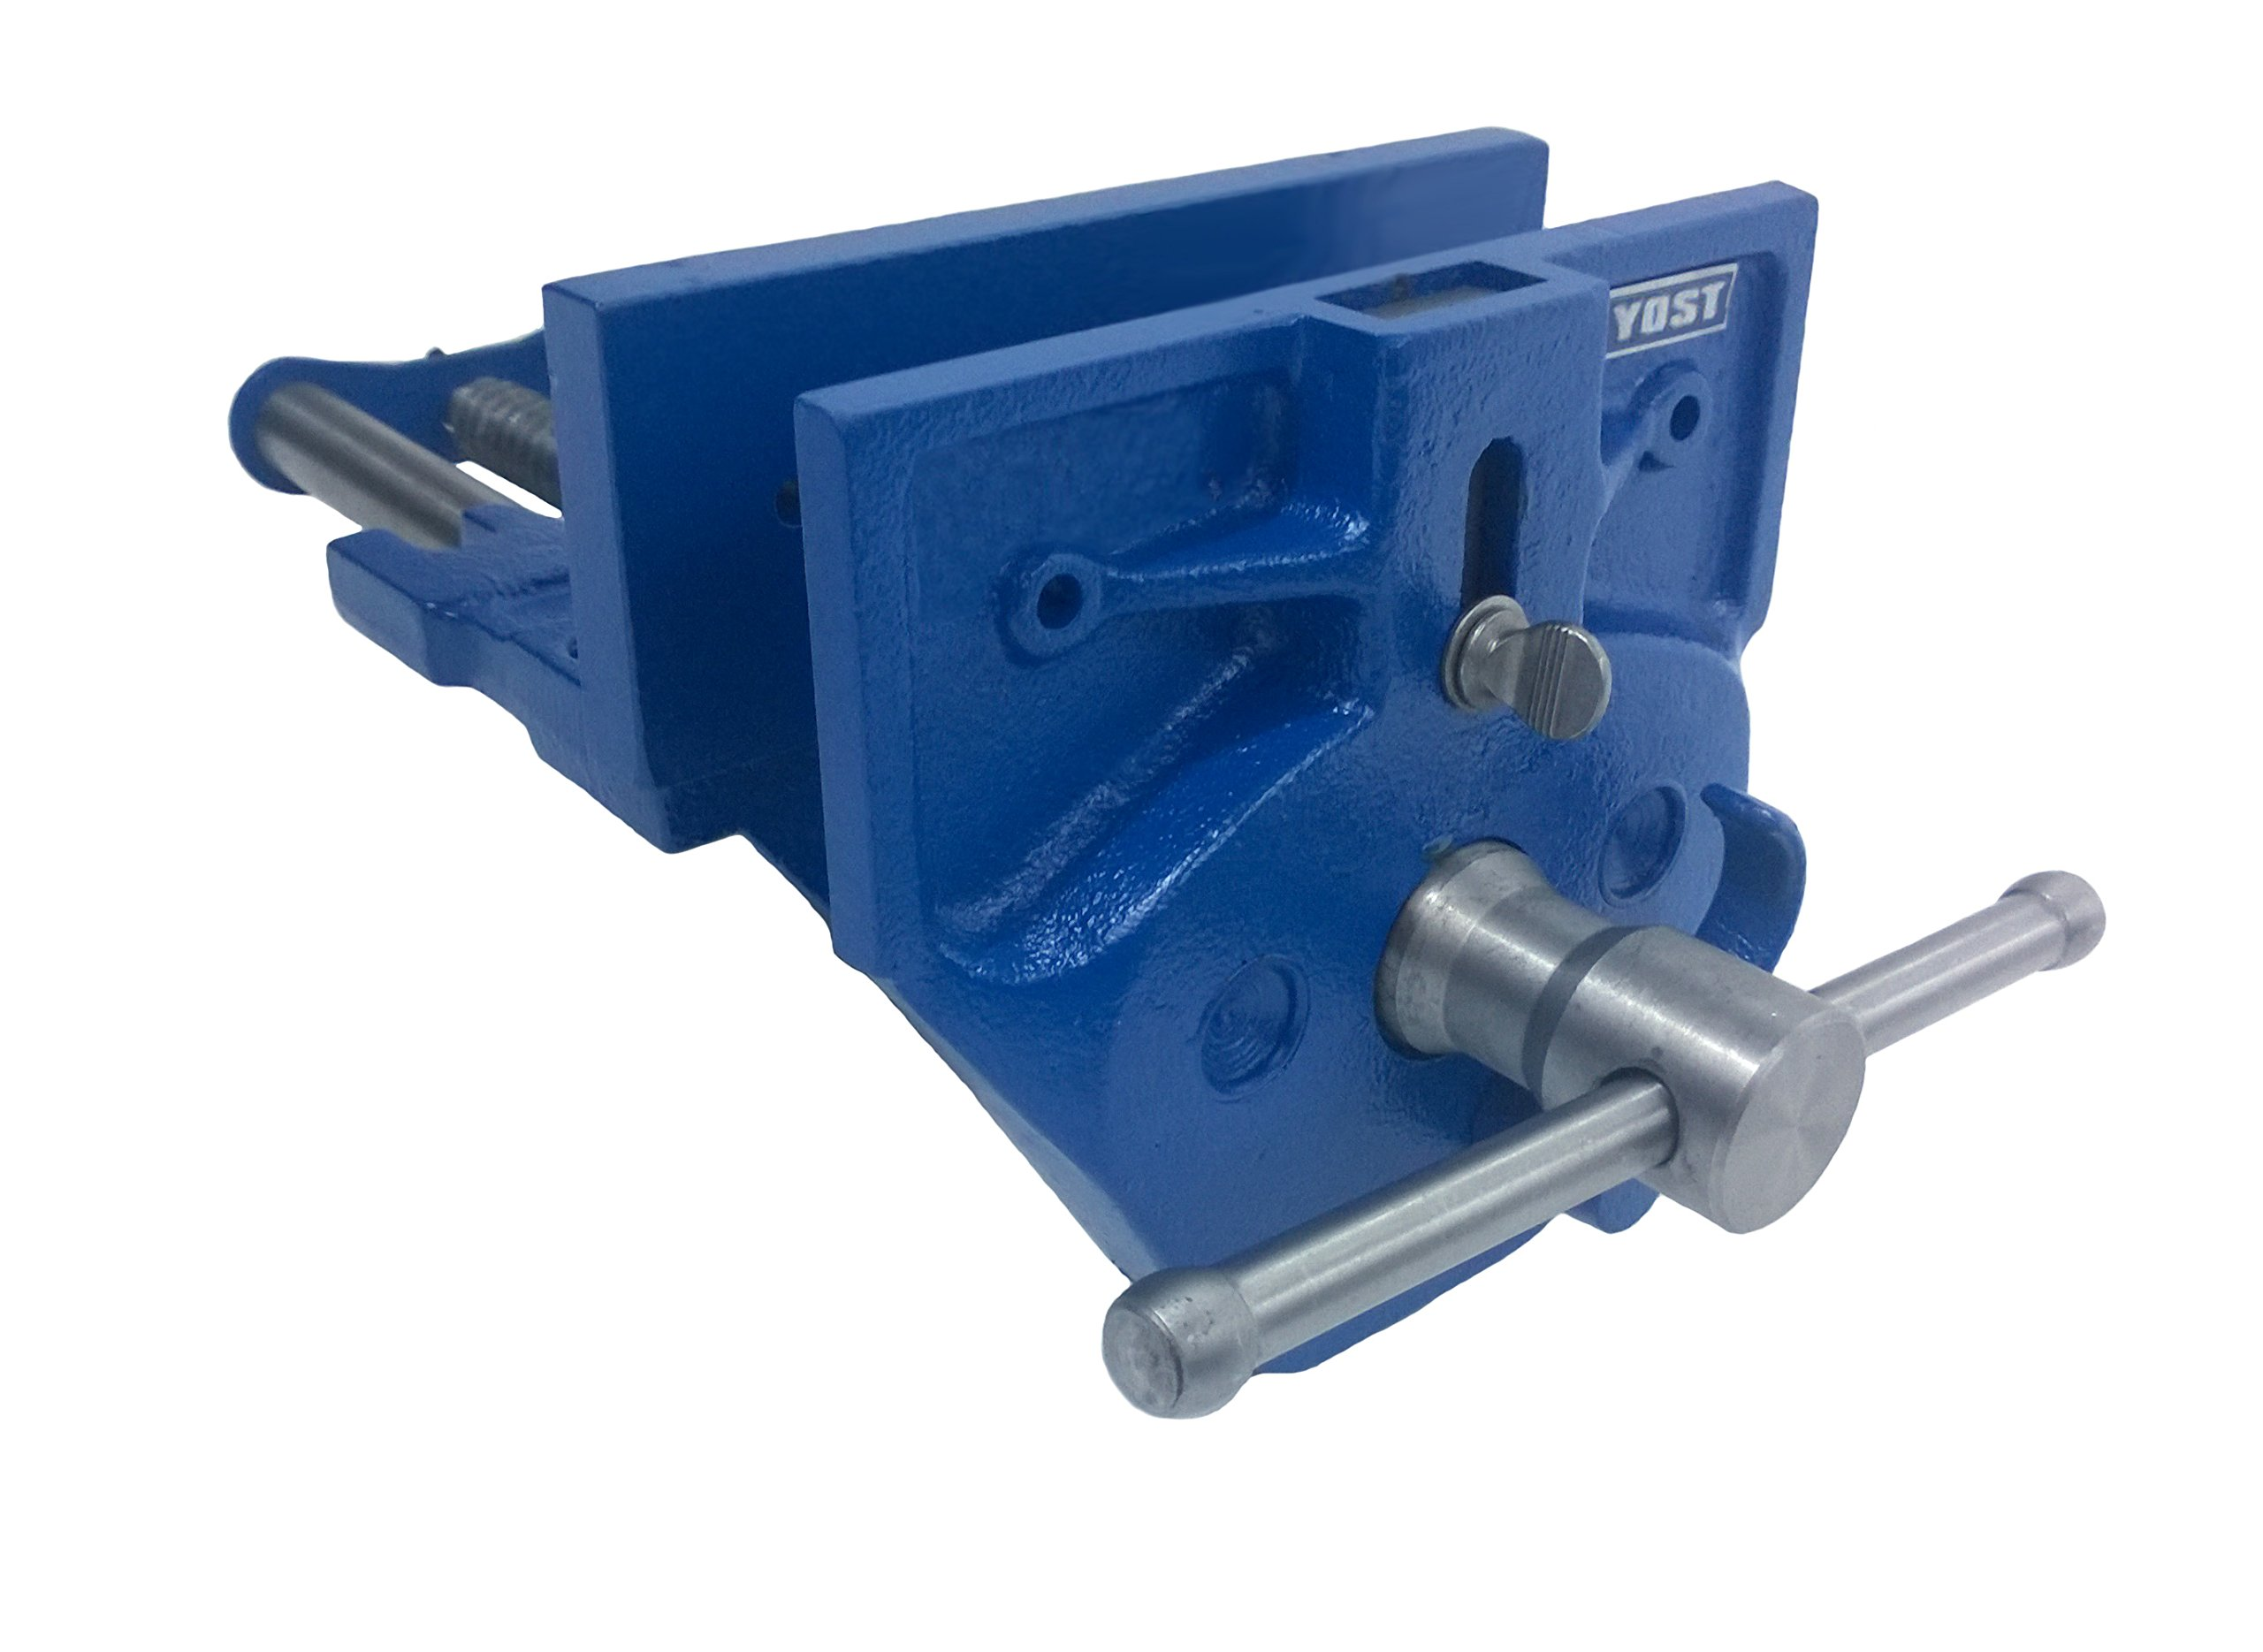 Yost M9WW Rapid Acting Wood Working Vise, 9'', Blue